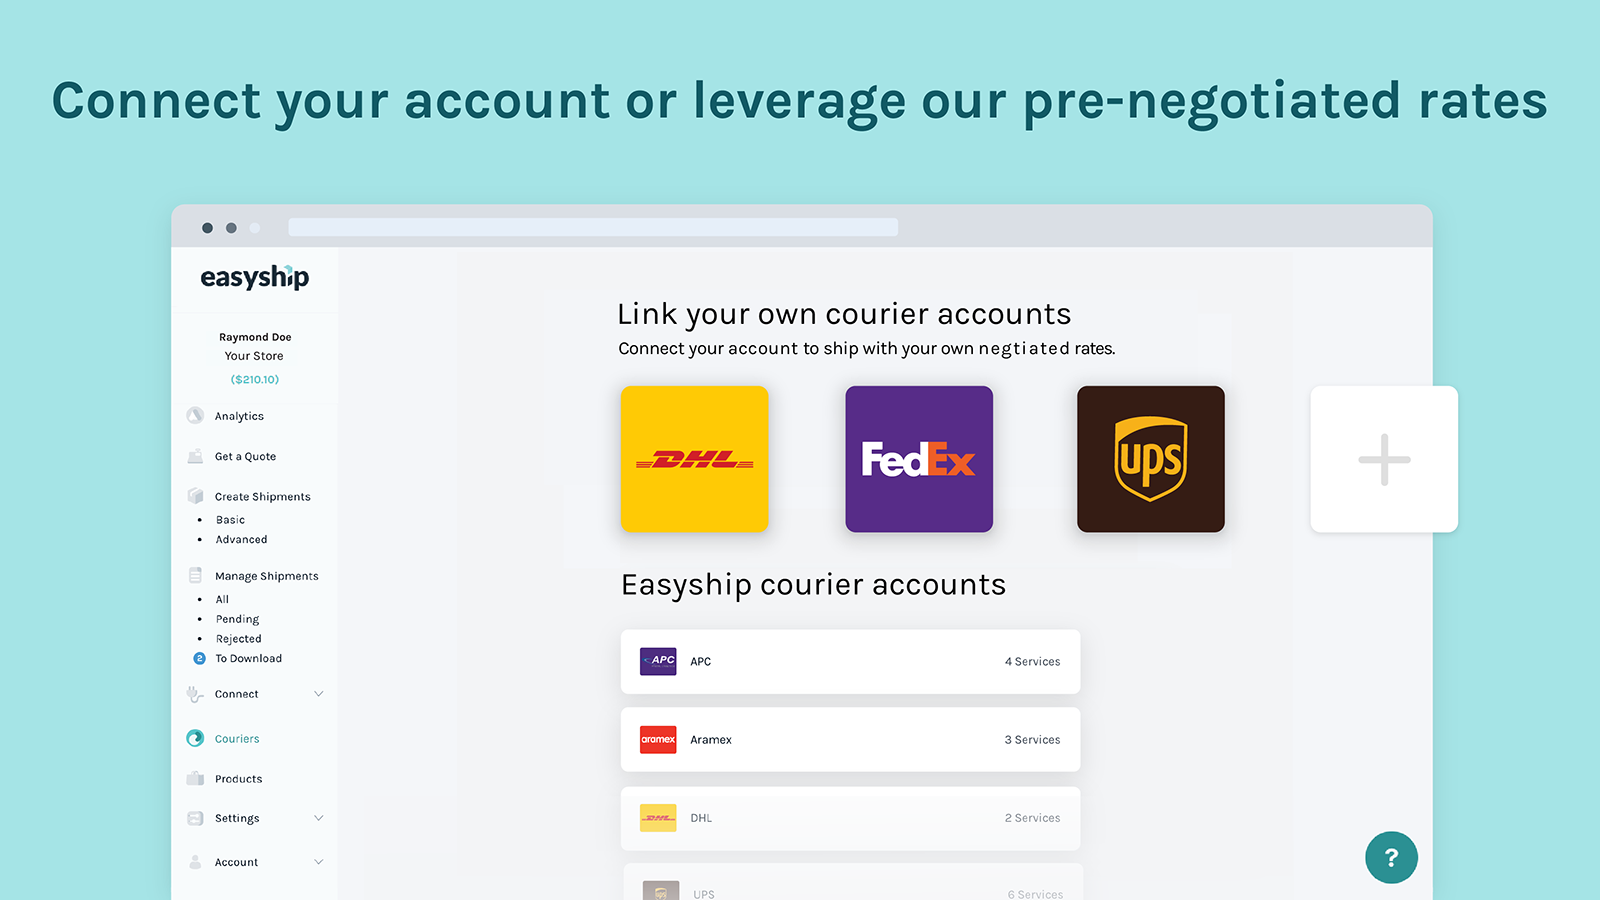 Connect Your Rates or Link to Pre-Negotiated Easyship Rates